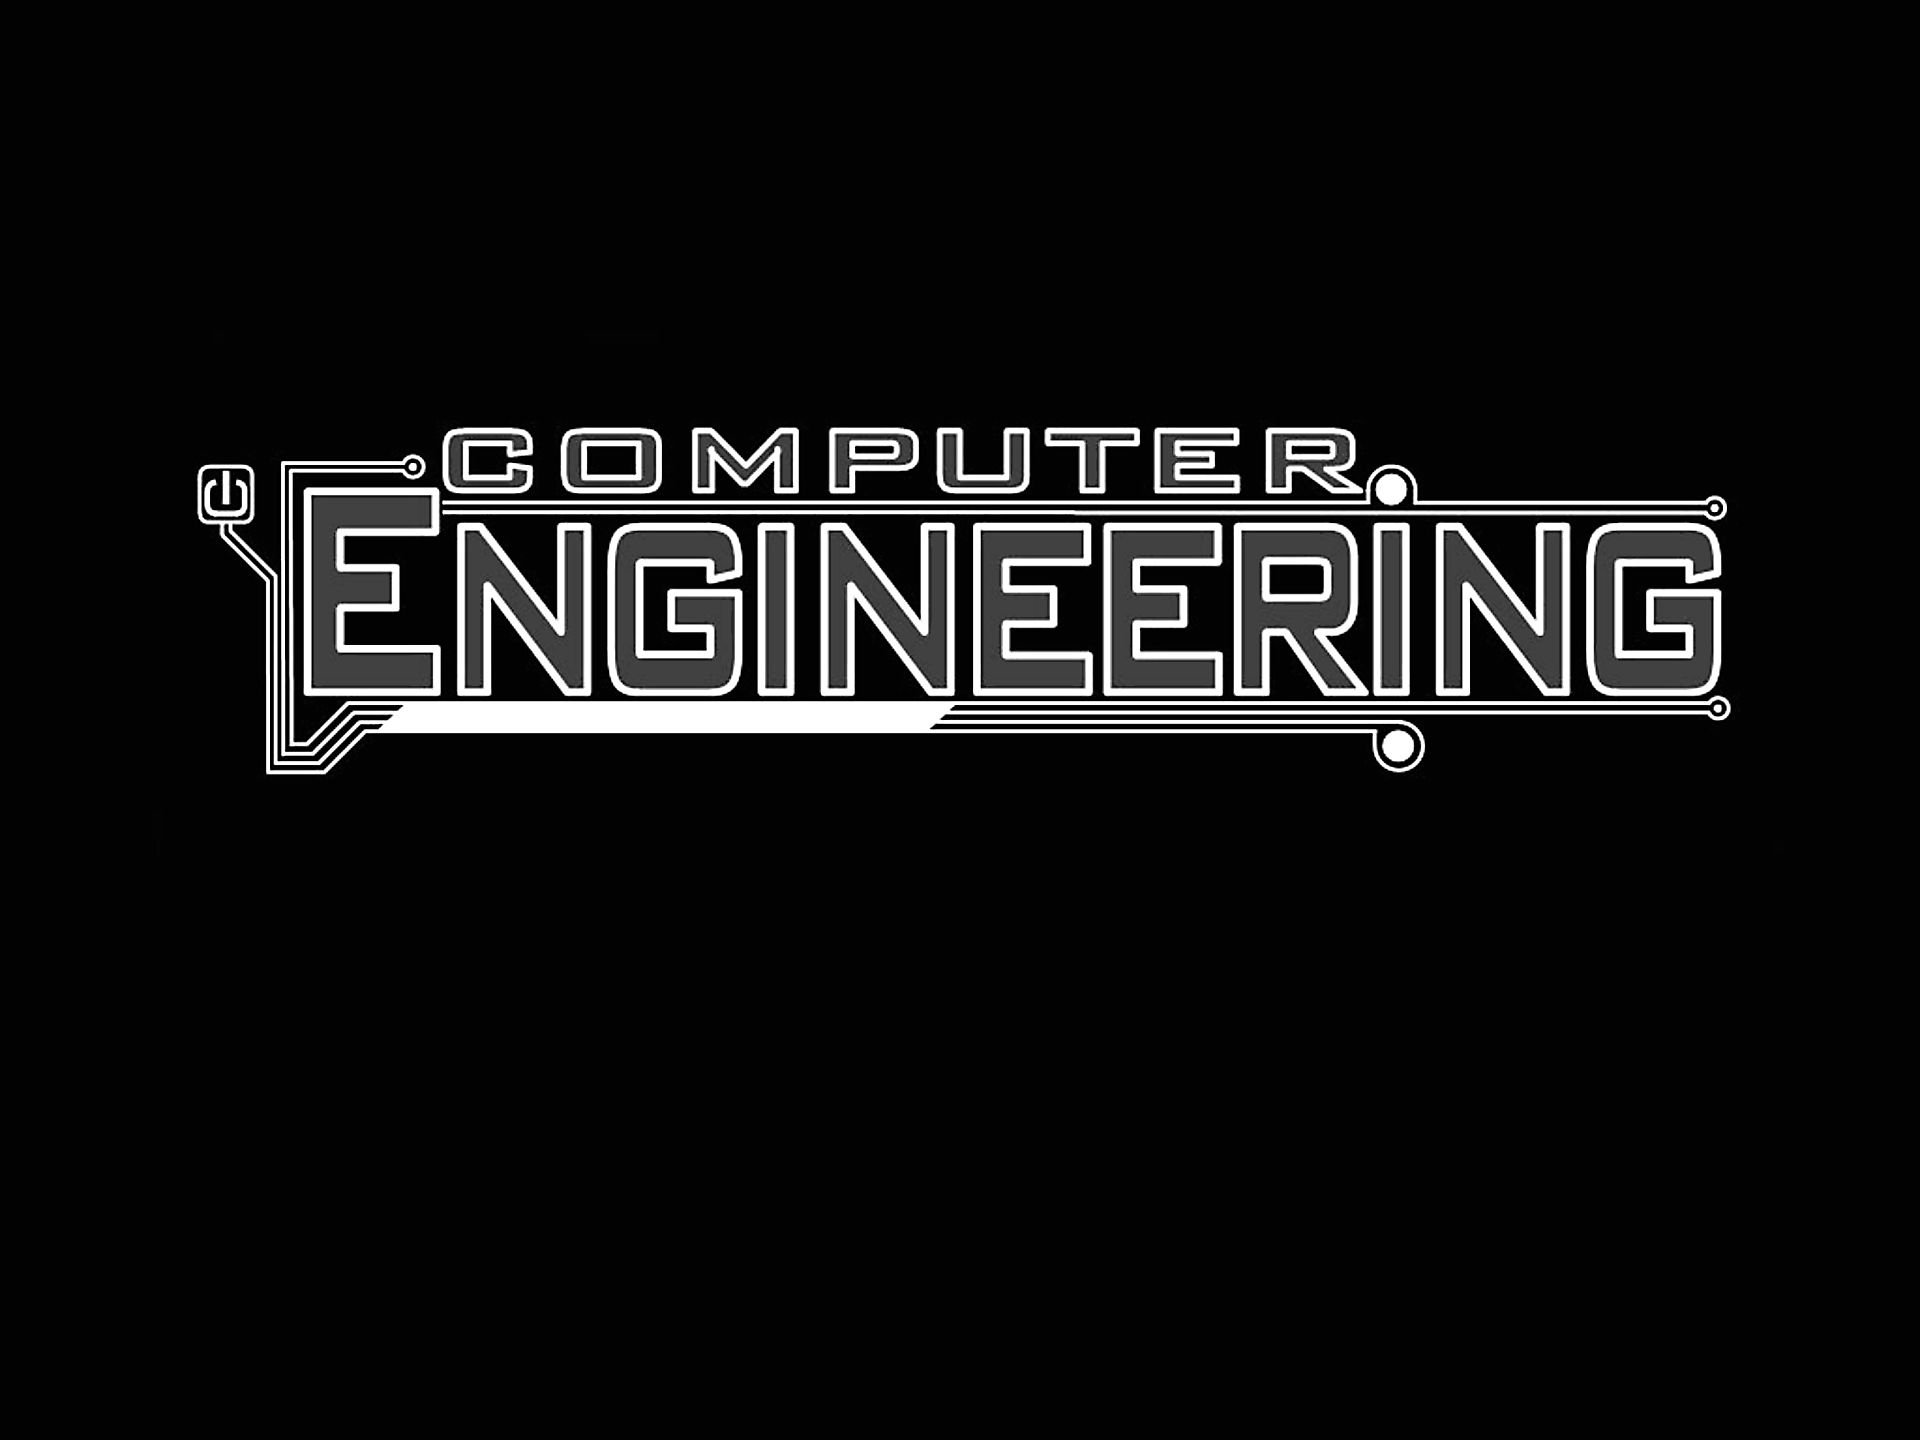 Hd Wallpapers For Computer Engineering